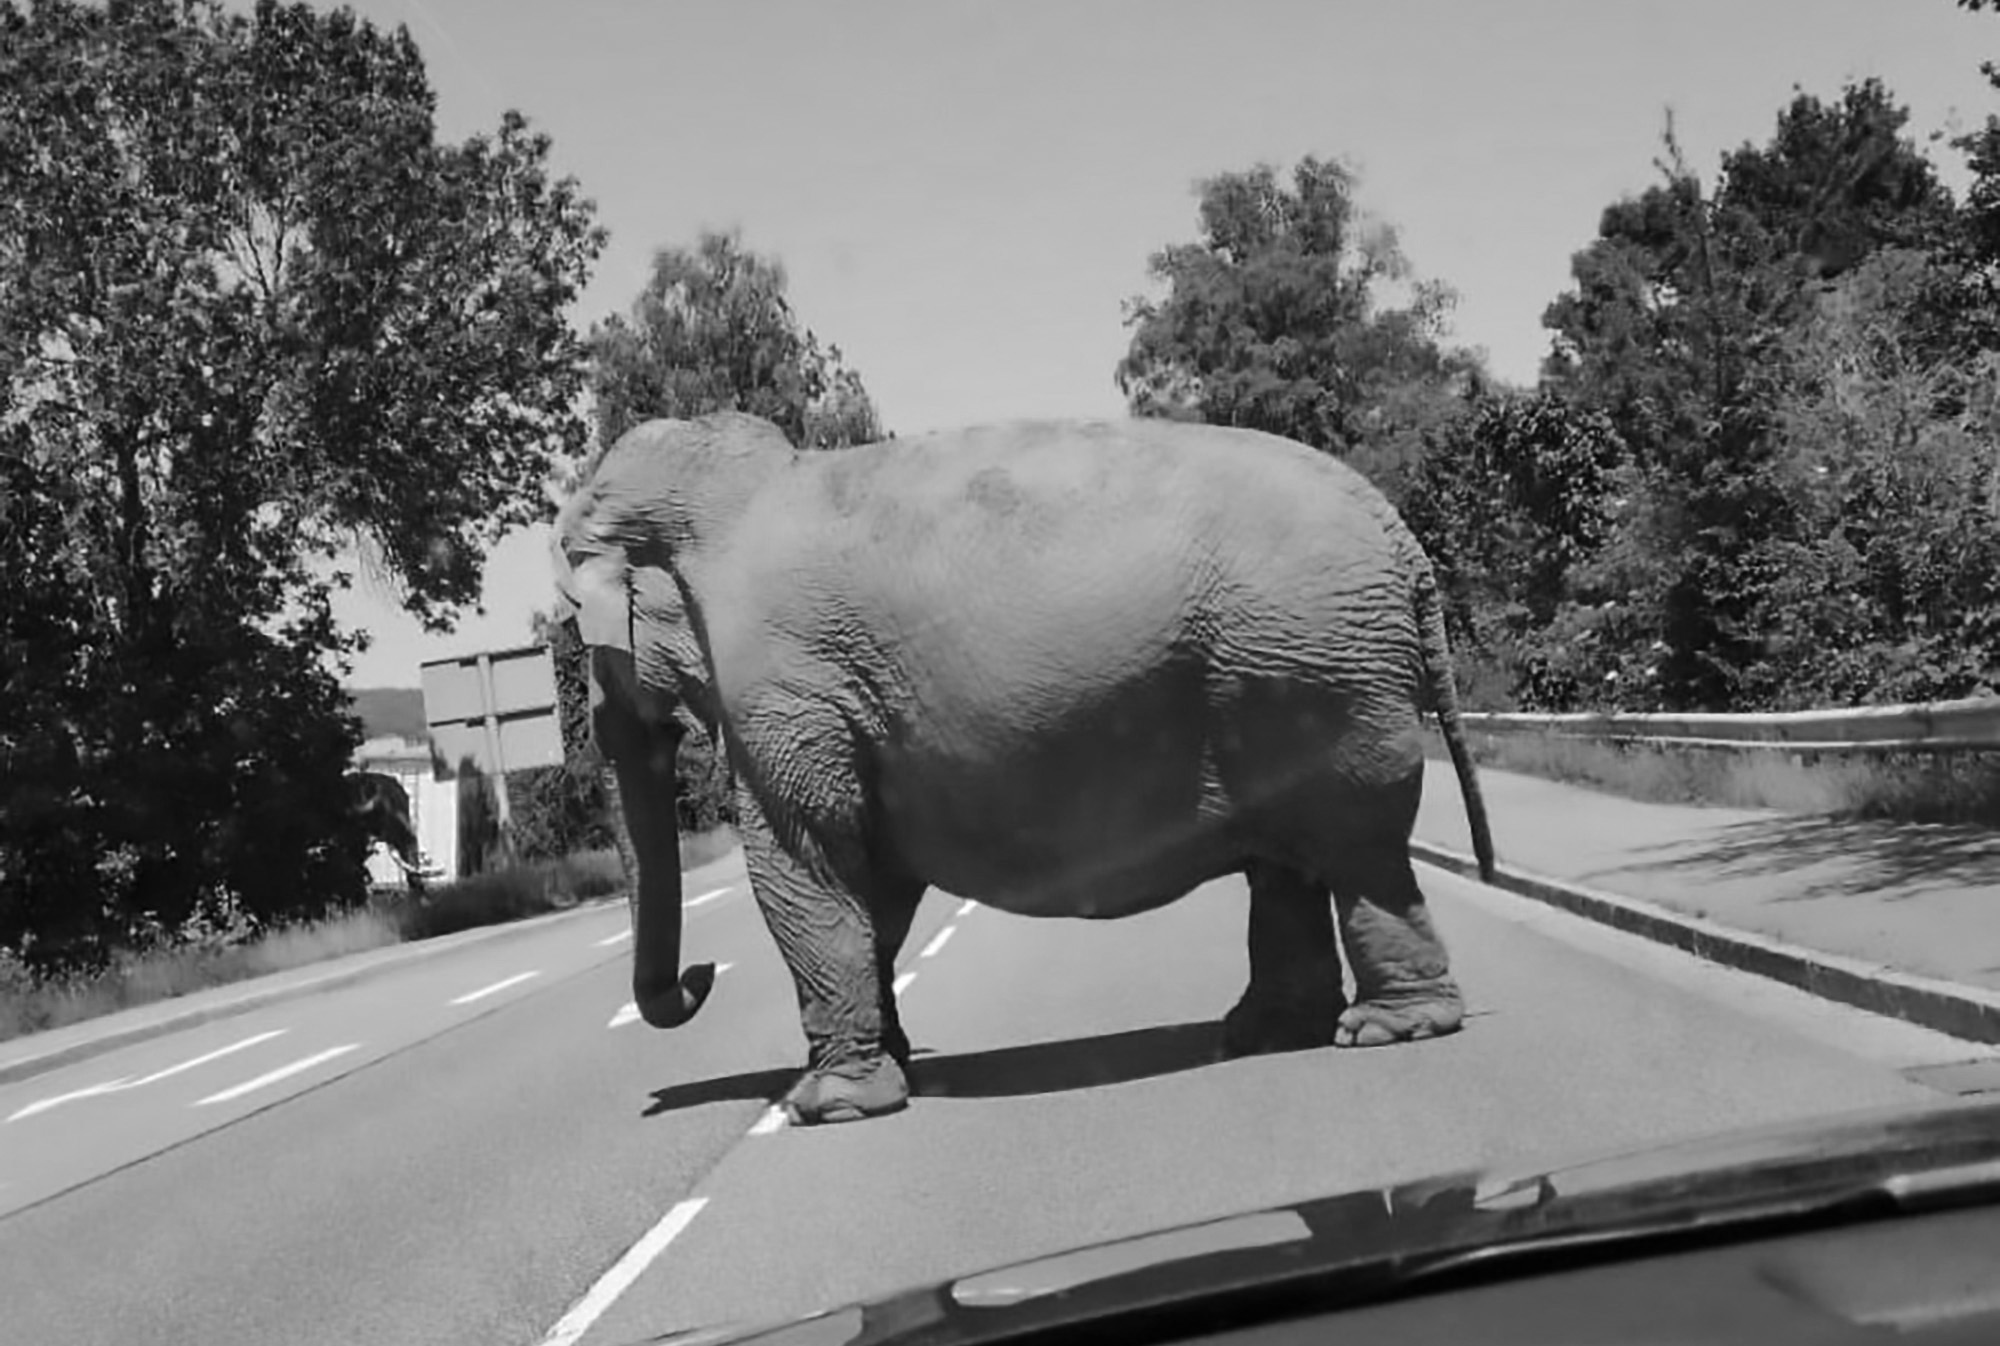 Germanys Oldest Circus Elephant Escapes On Busy Road